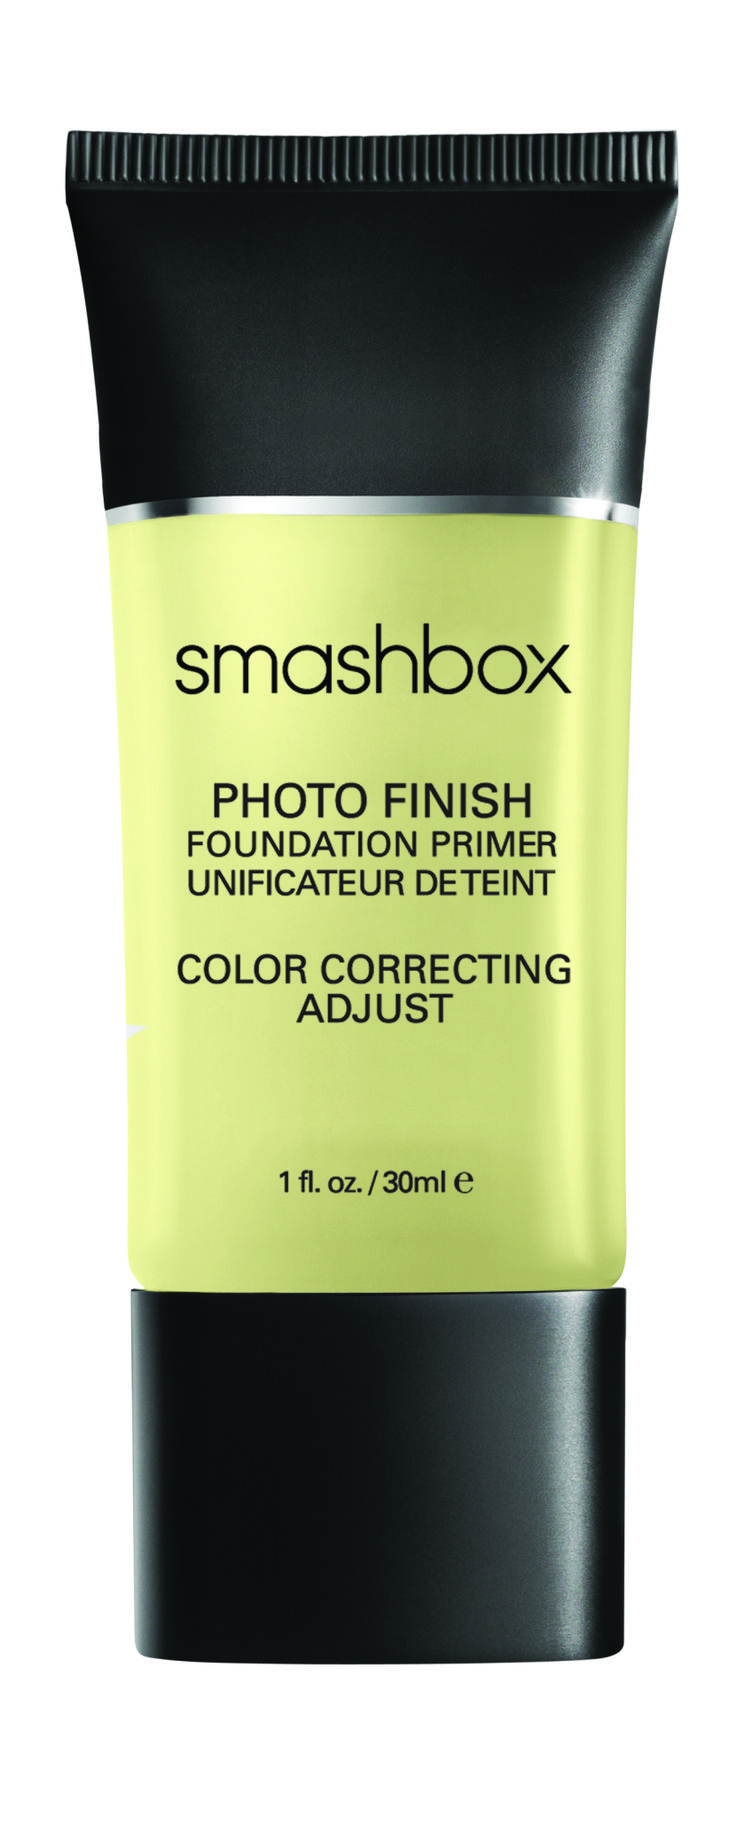 $39 smashbox redness correcting Primer Since green is opposite from red on the color wheel, it only makes sense that this green (yes, the product itself is actually green) foundation primer will cancel out the redness in your skin before you apply your foundation. The product's formula will also help to fill in fine lines and give a flawless finish with the perfect blend of antioxidants, vitamins A and E, and soothing botanicals, like soy and lemongrass.